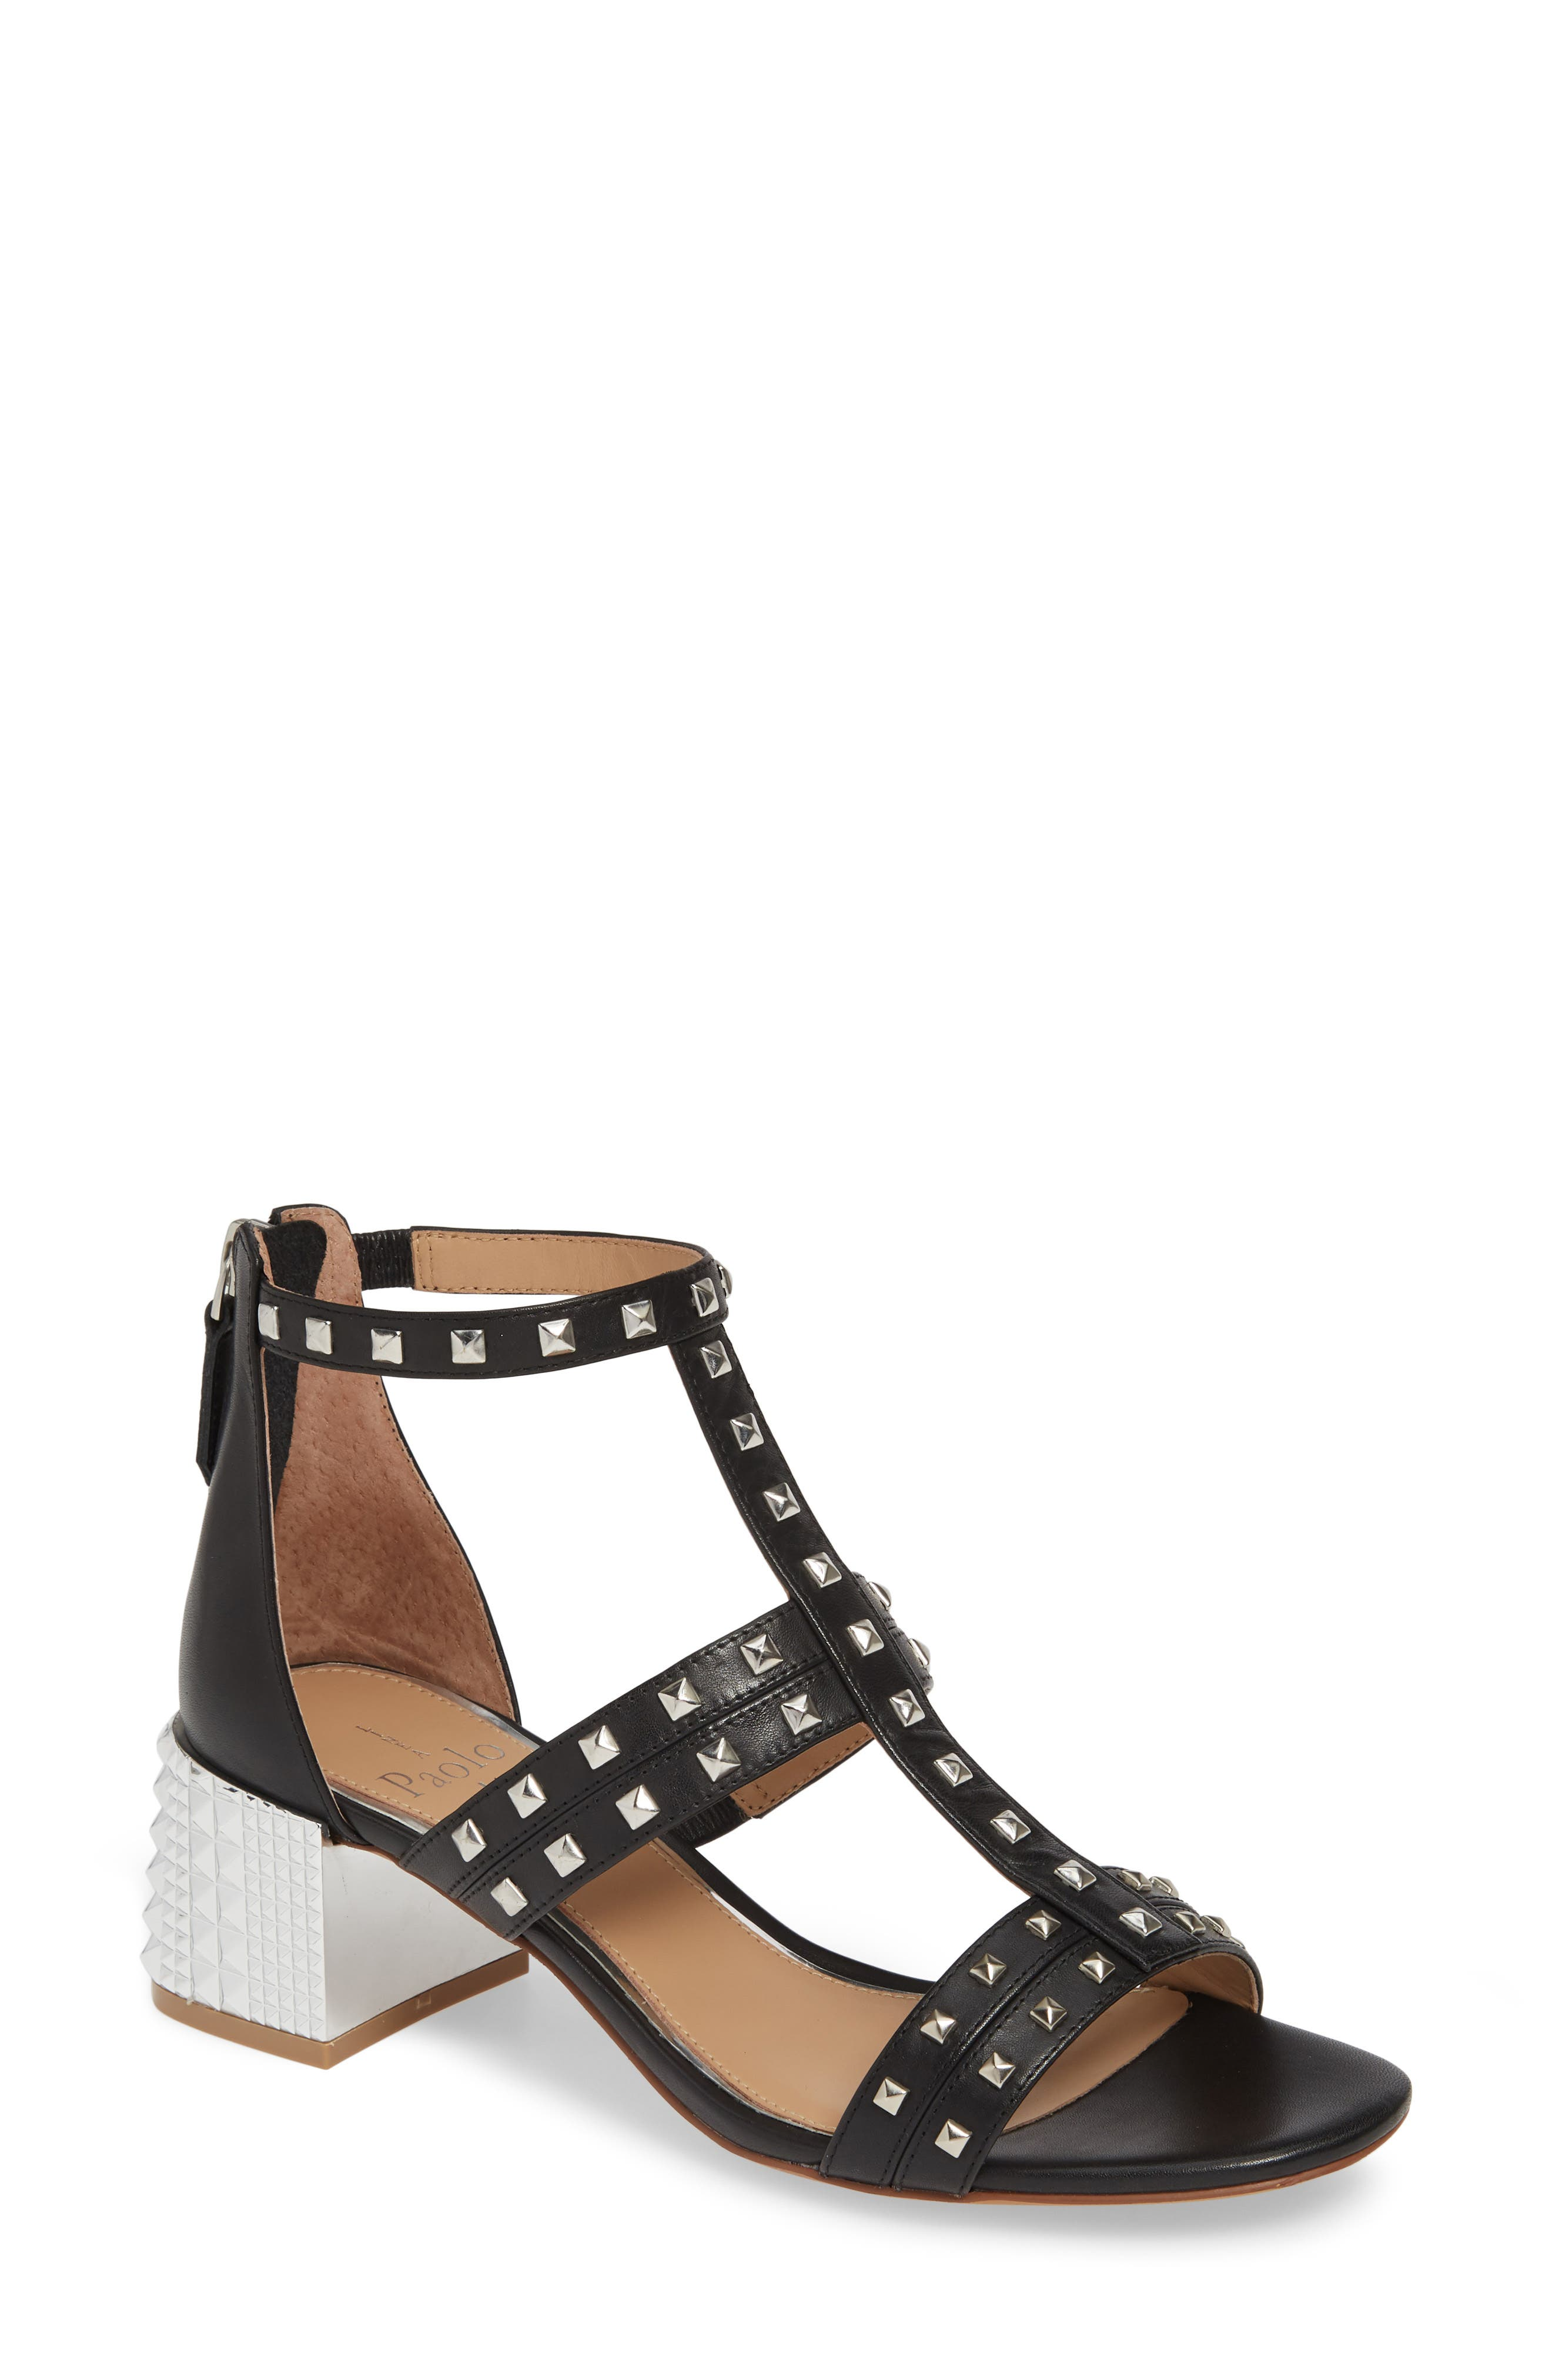 LINEA PAOLO Harley Sandal, Main, color, BLACK LEATHER